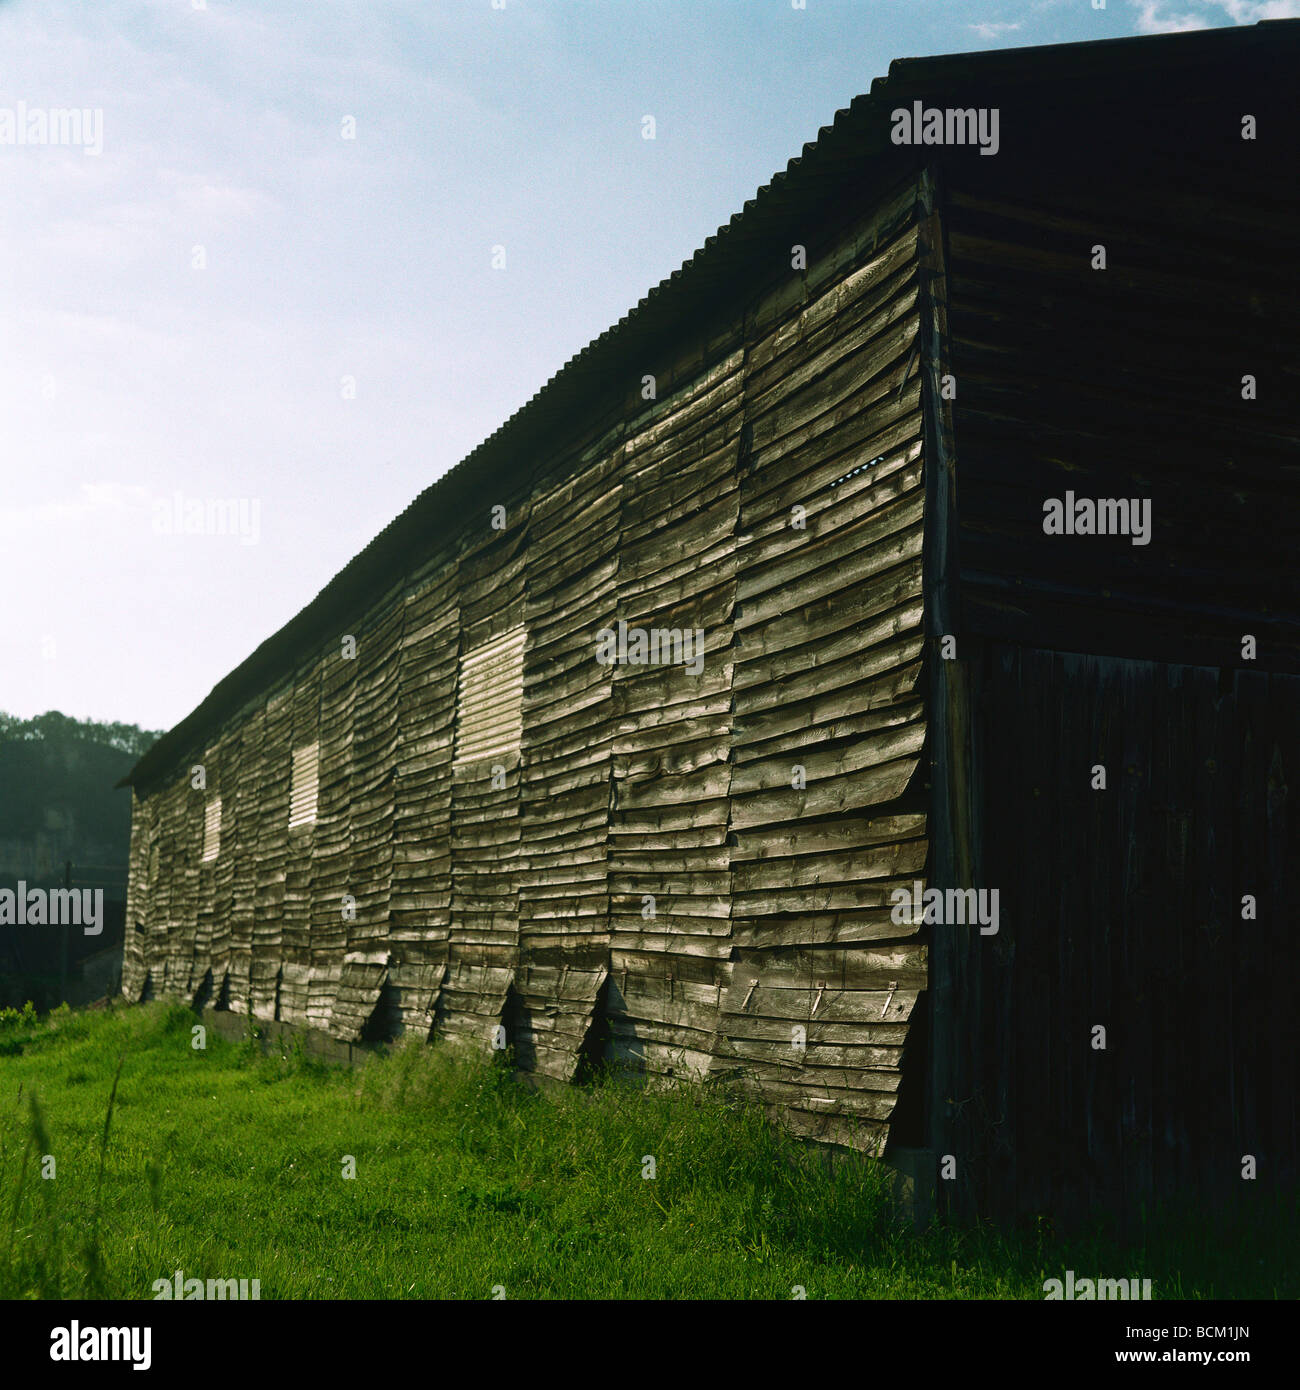 Wood building, exterior view - Stock Image